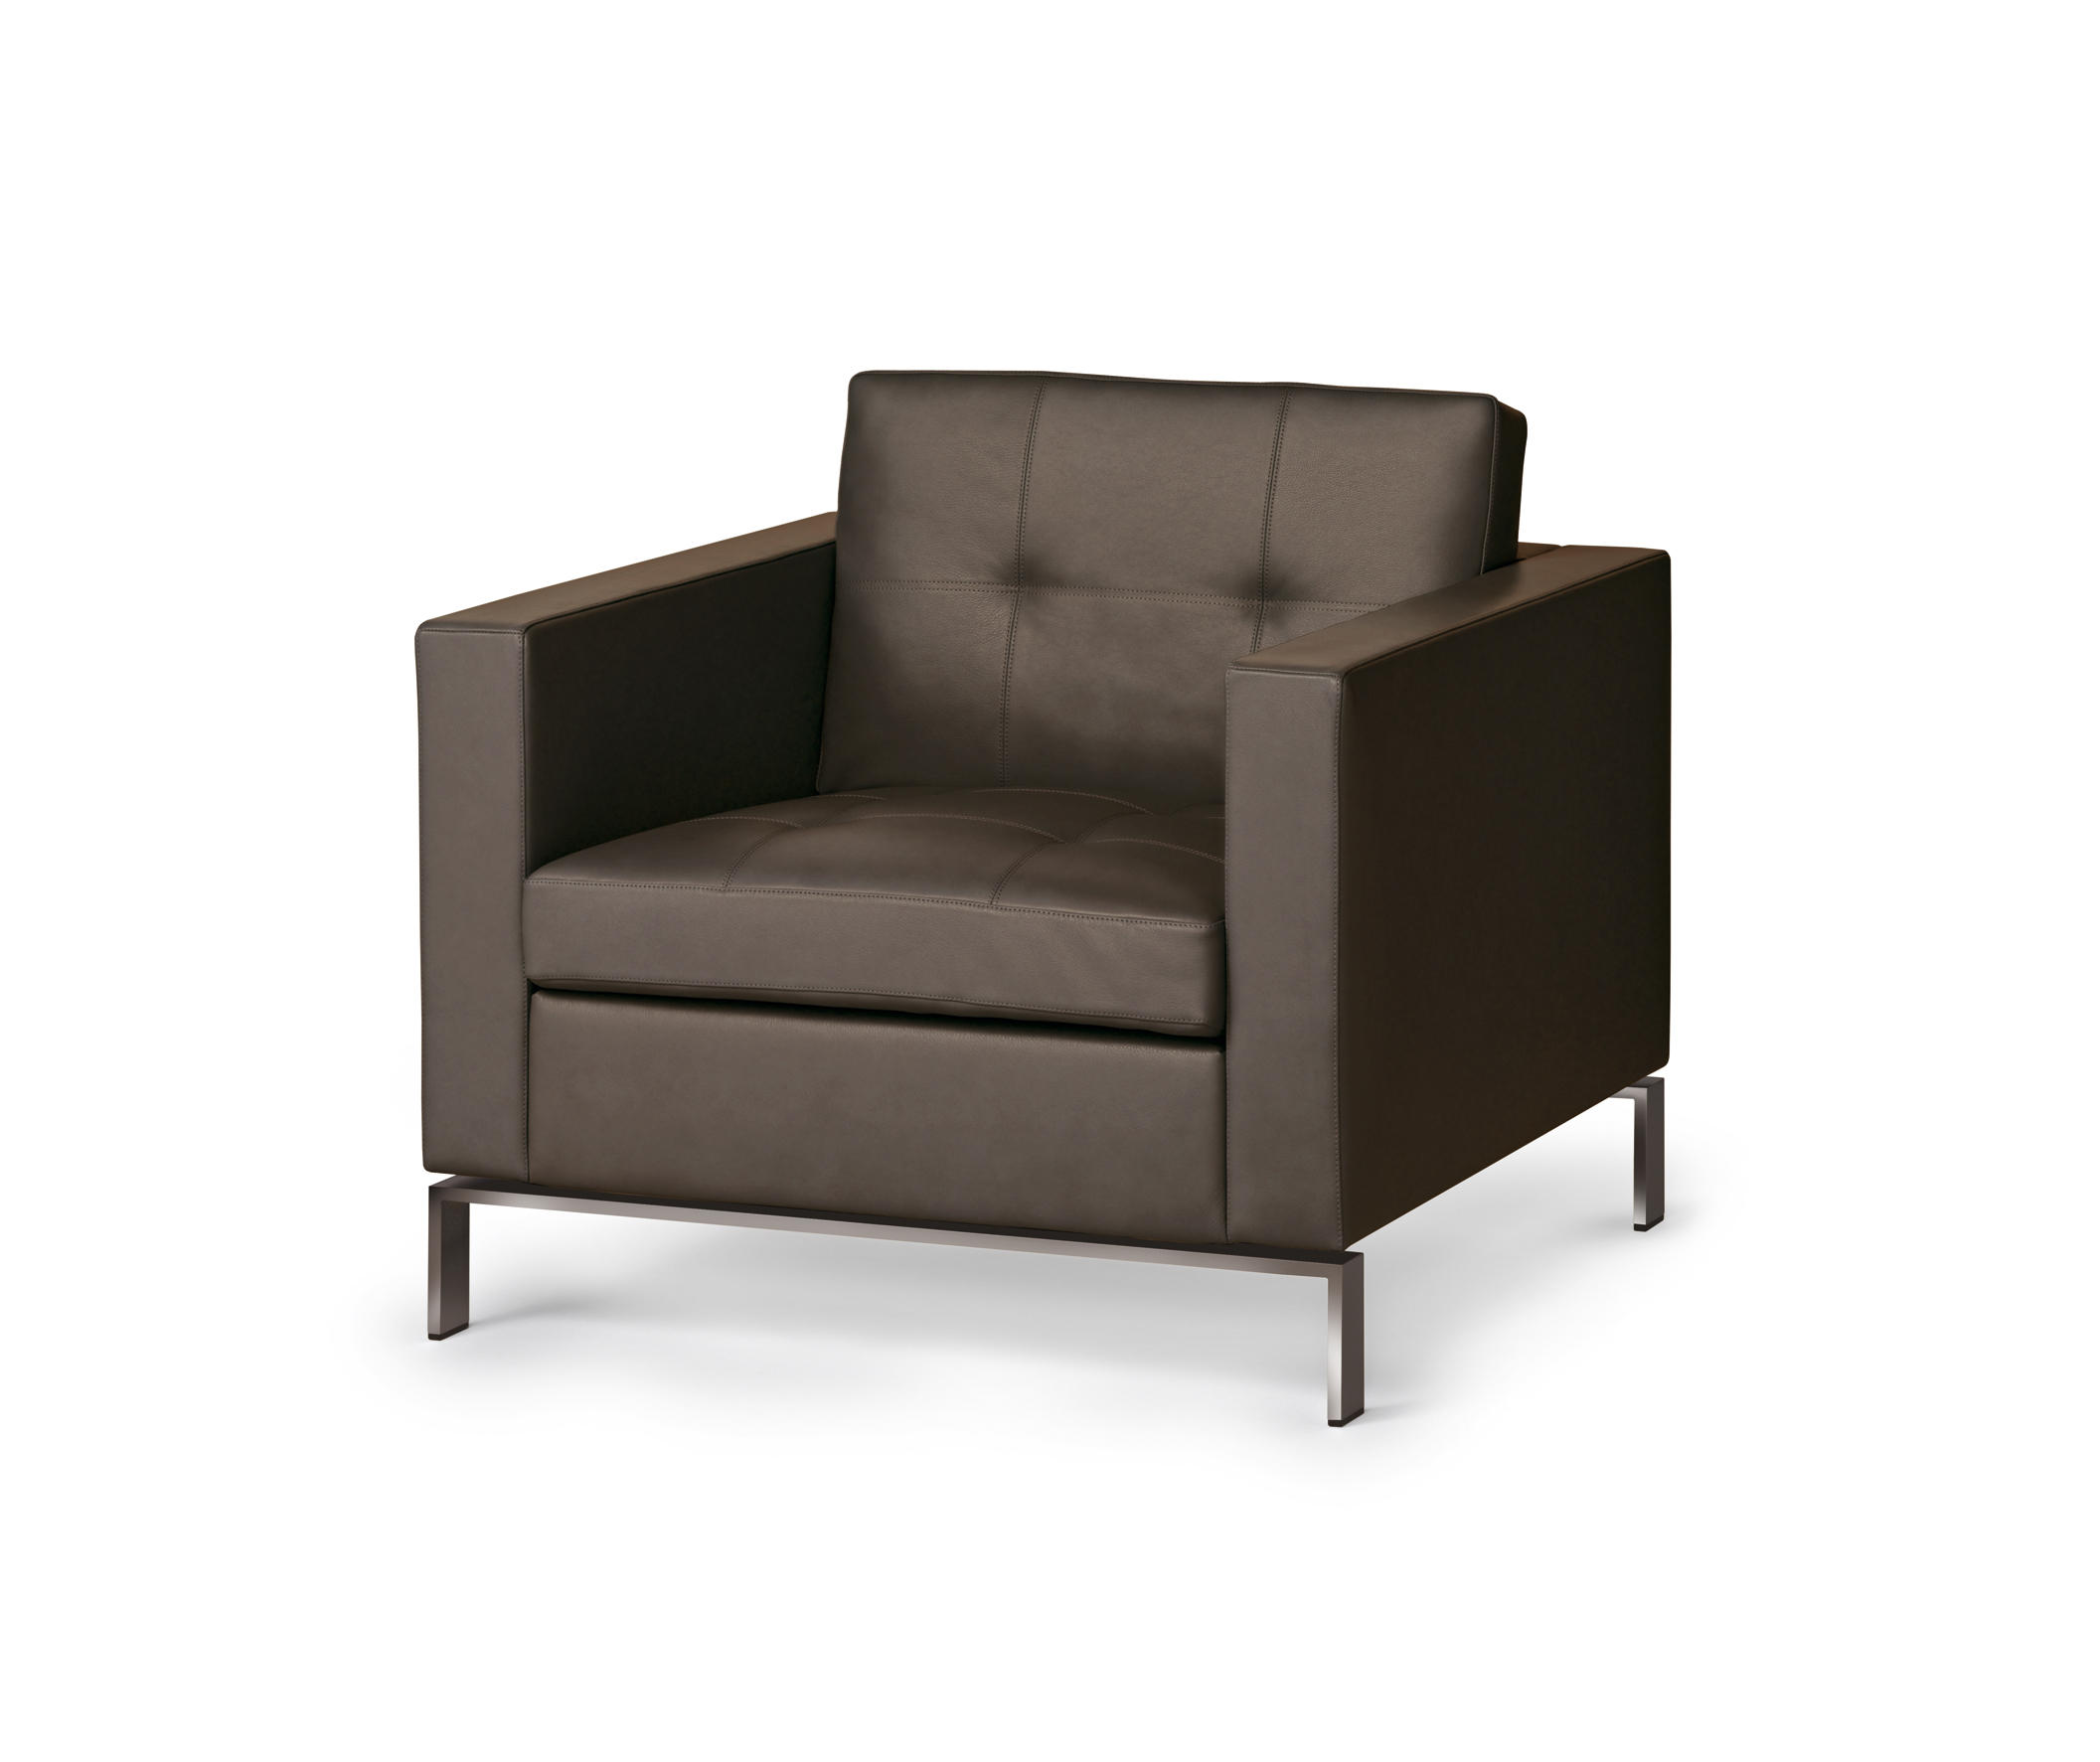 foster 502 sessel loungesessel von walter knoll architonic. Black Bedroom Furniture Sets. Home Design Ideas